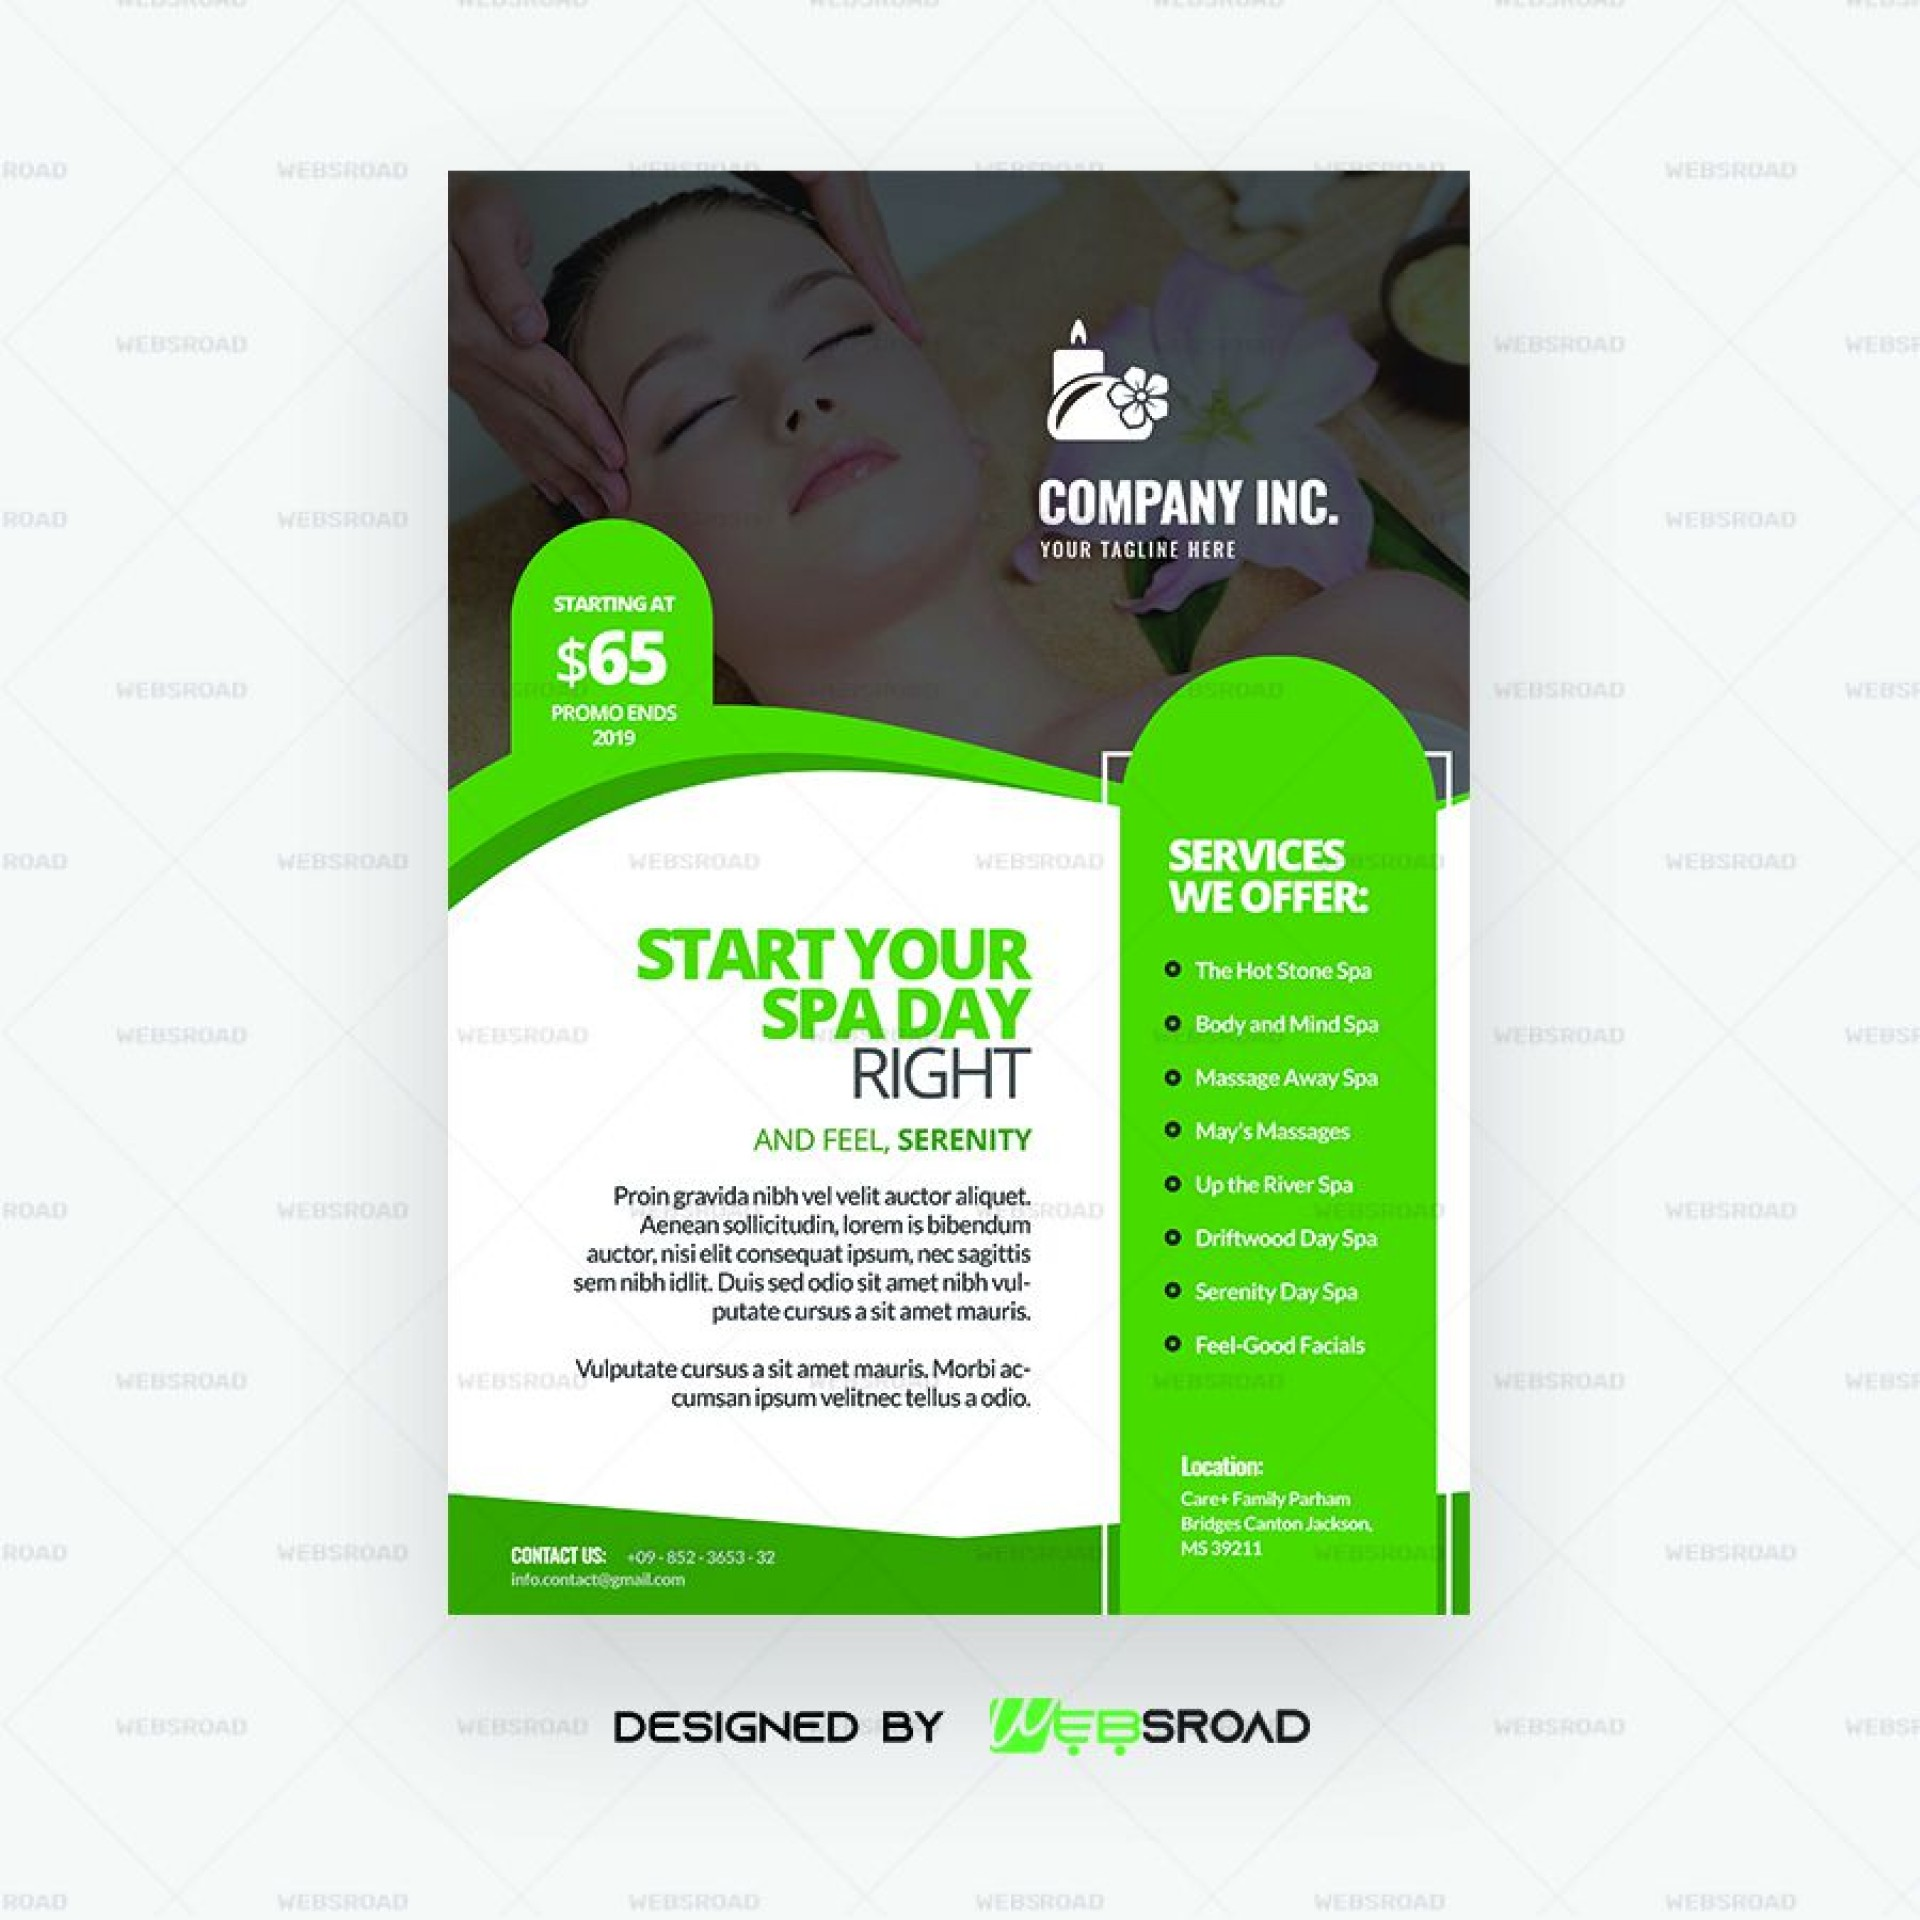 004 Archaicawful Free Flyer Design Template Highest Quality  Templates Online Download Psd1920